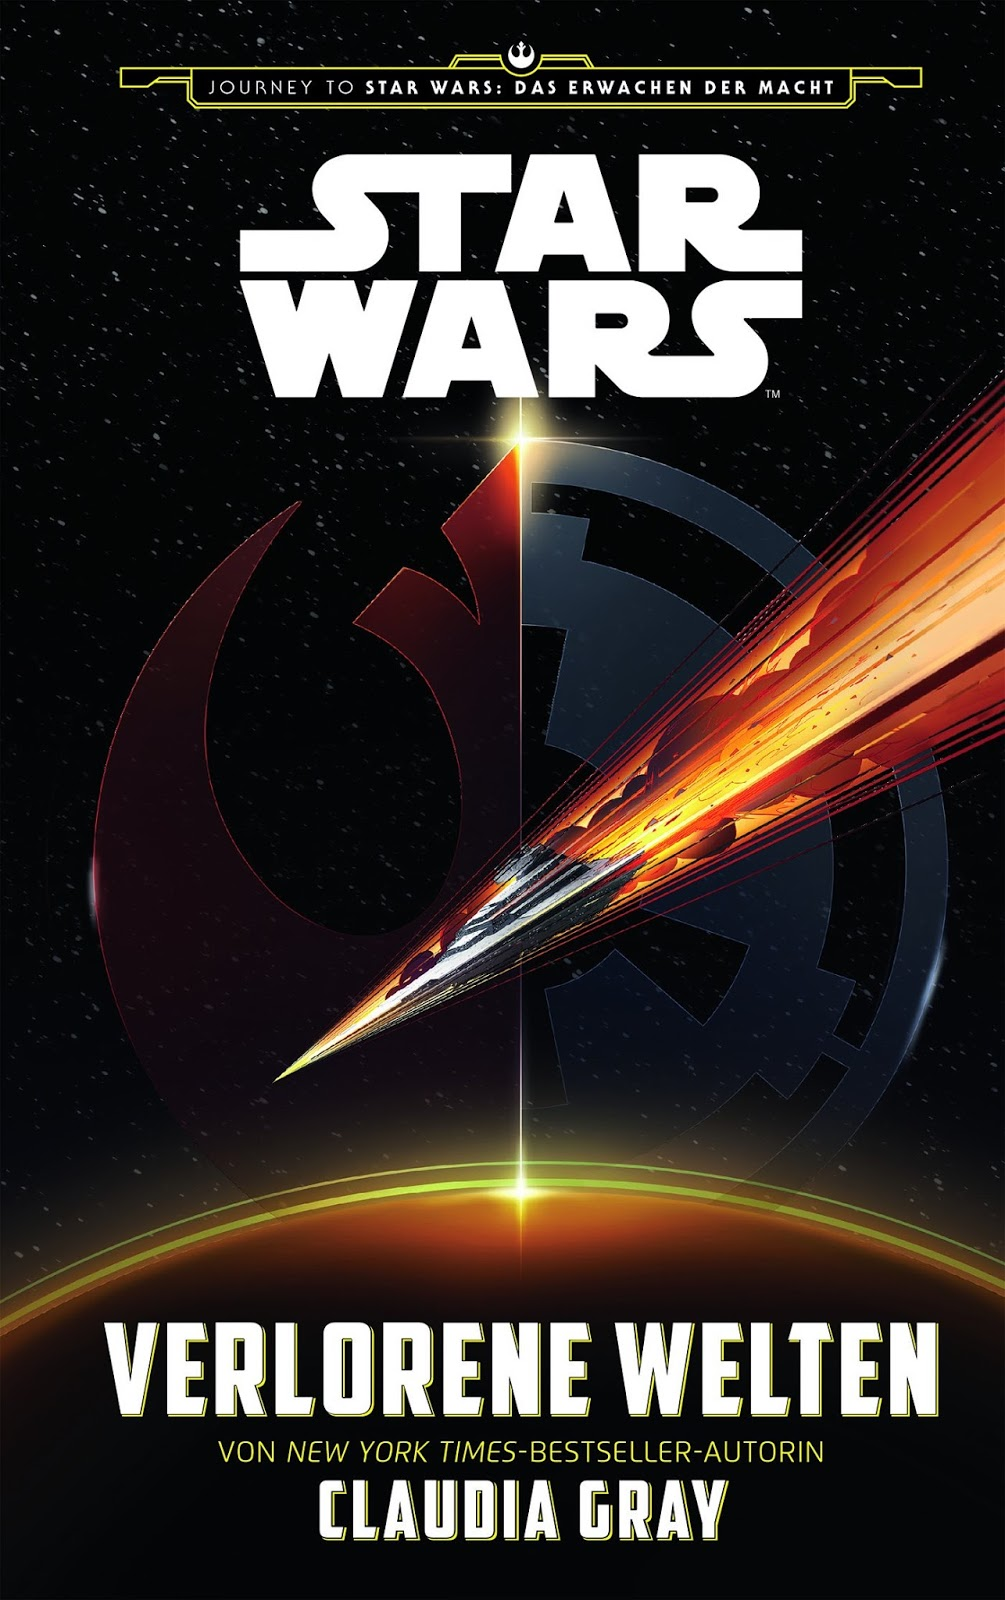 http://nothingbutn9erz.blogspot.co.at/2016/03/journey-to-star-wars-episode-7-verlorene-welten-panini-rezension.html